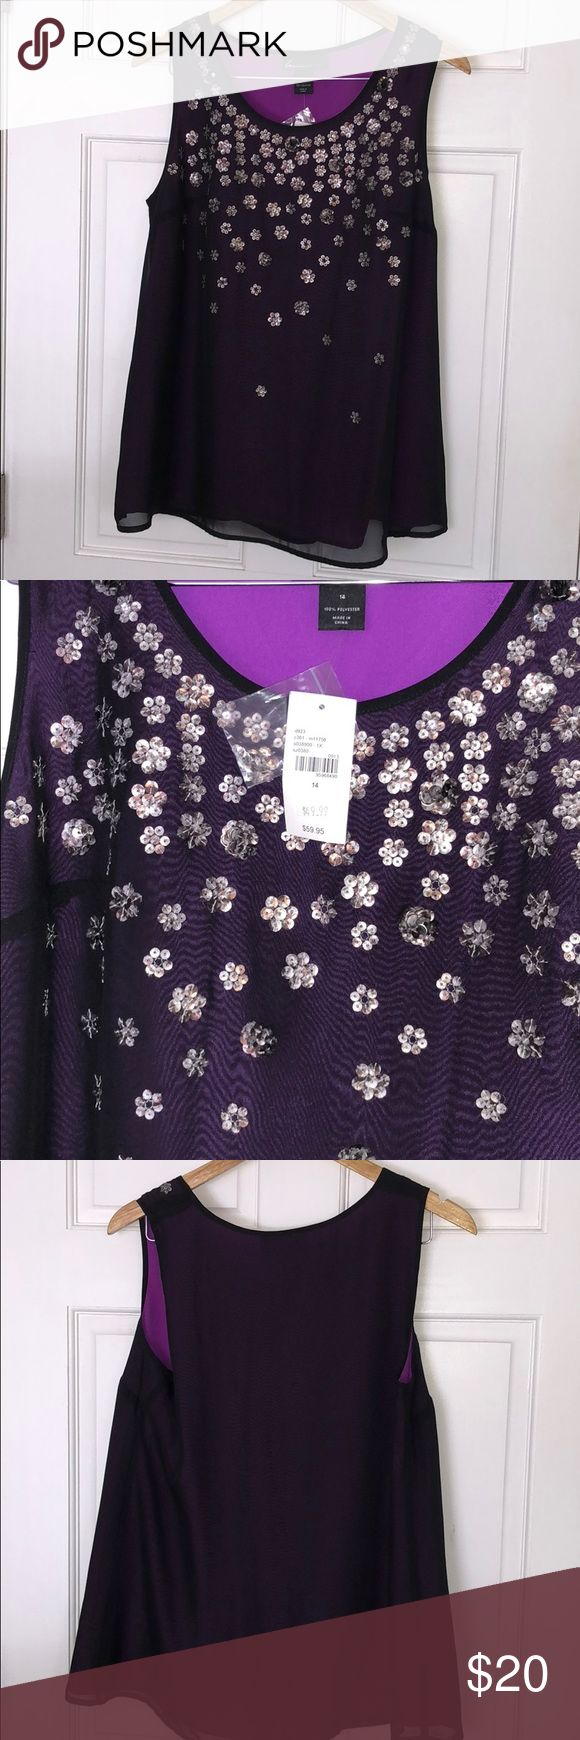 NWT Lane Bryant Sequin Flower Cami Top Size 14 NWT top from Lane Bryant, Size 14 in a beautiful shade of purple! Sequins have a silver sheen and are in a flower pattern. Please feel free to ask any questions and check out my other listings! Lane Bryant Tops Camisoles